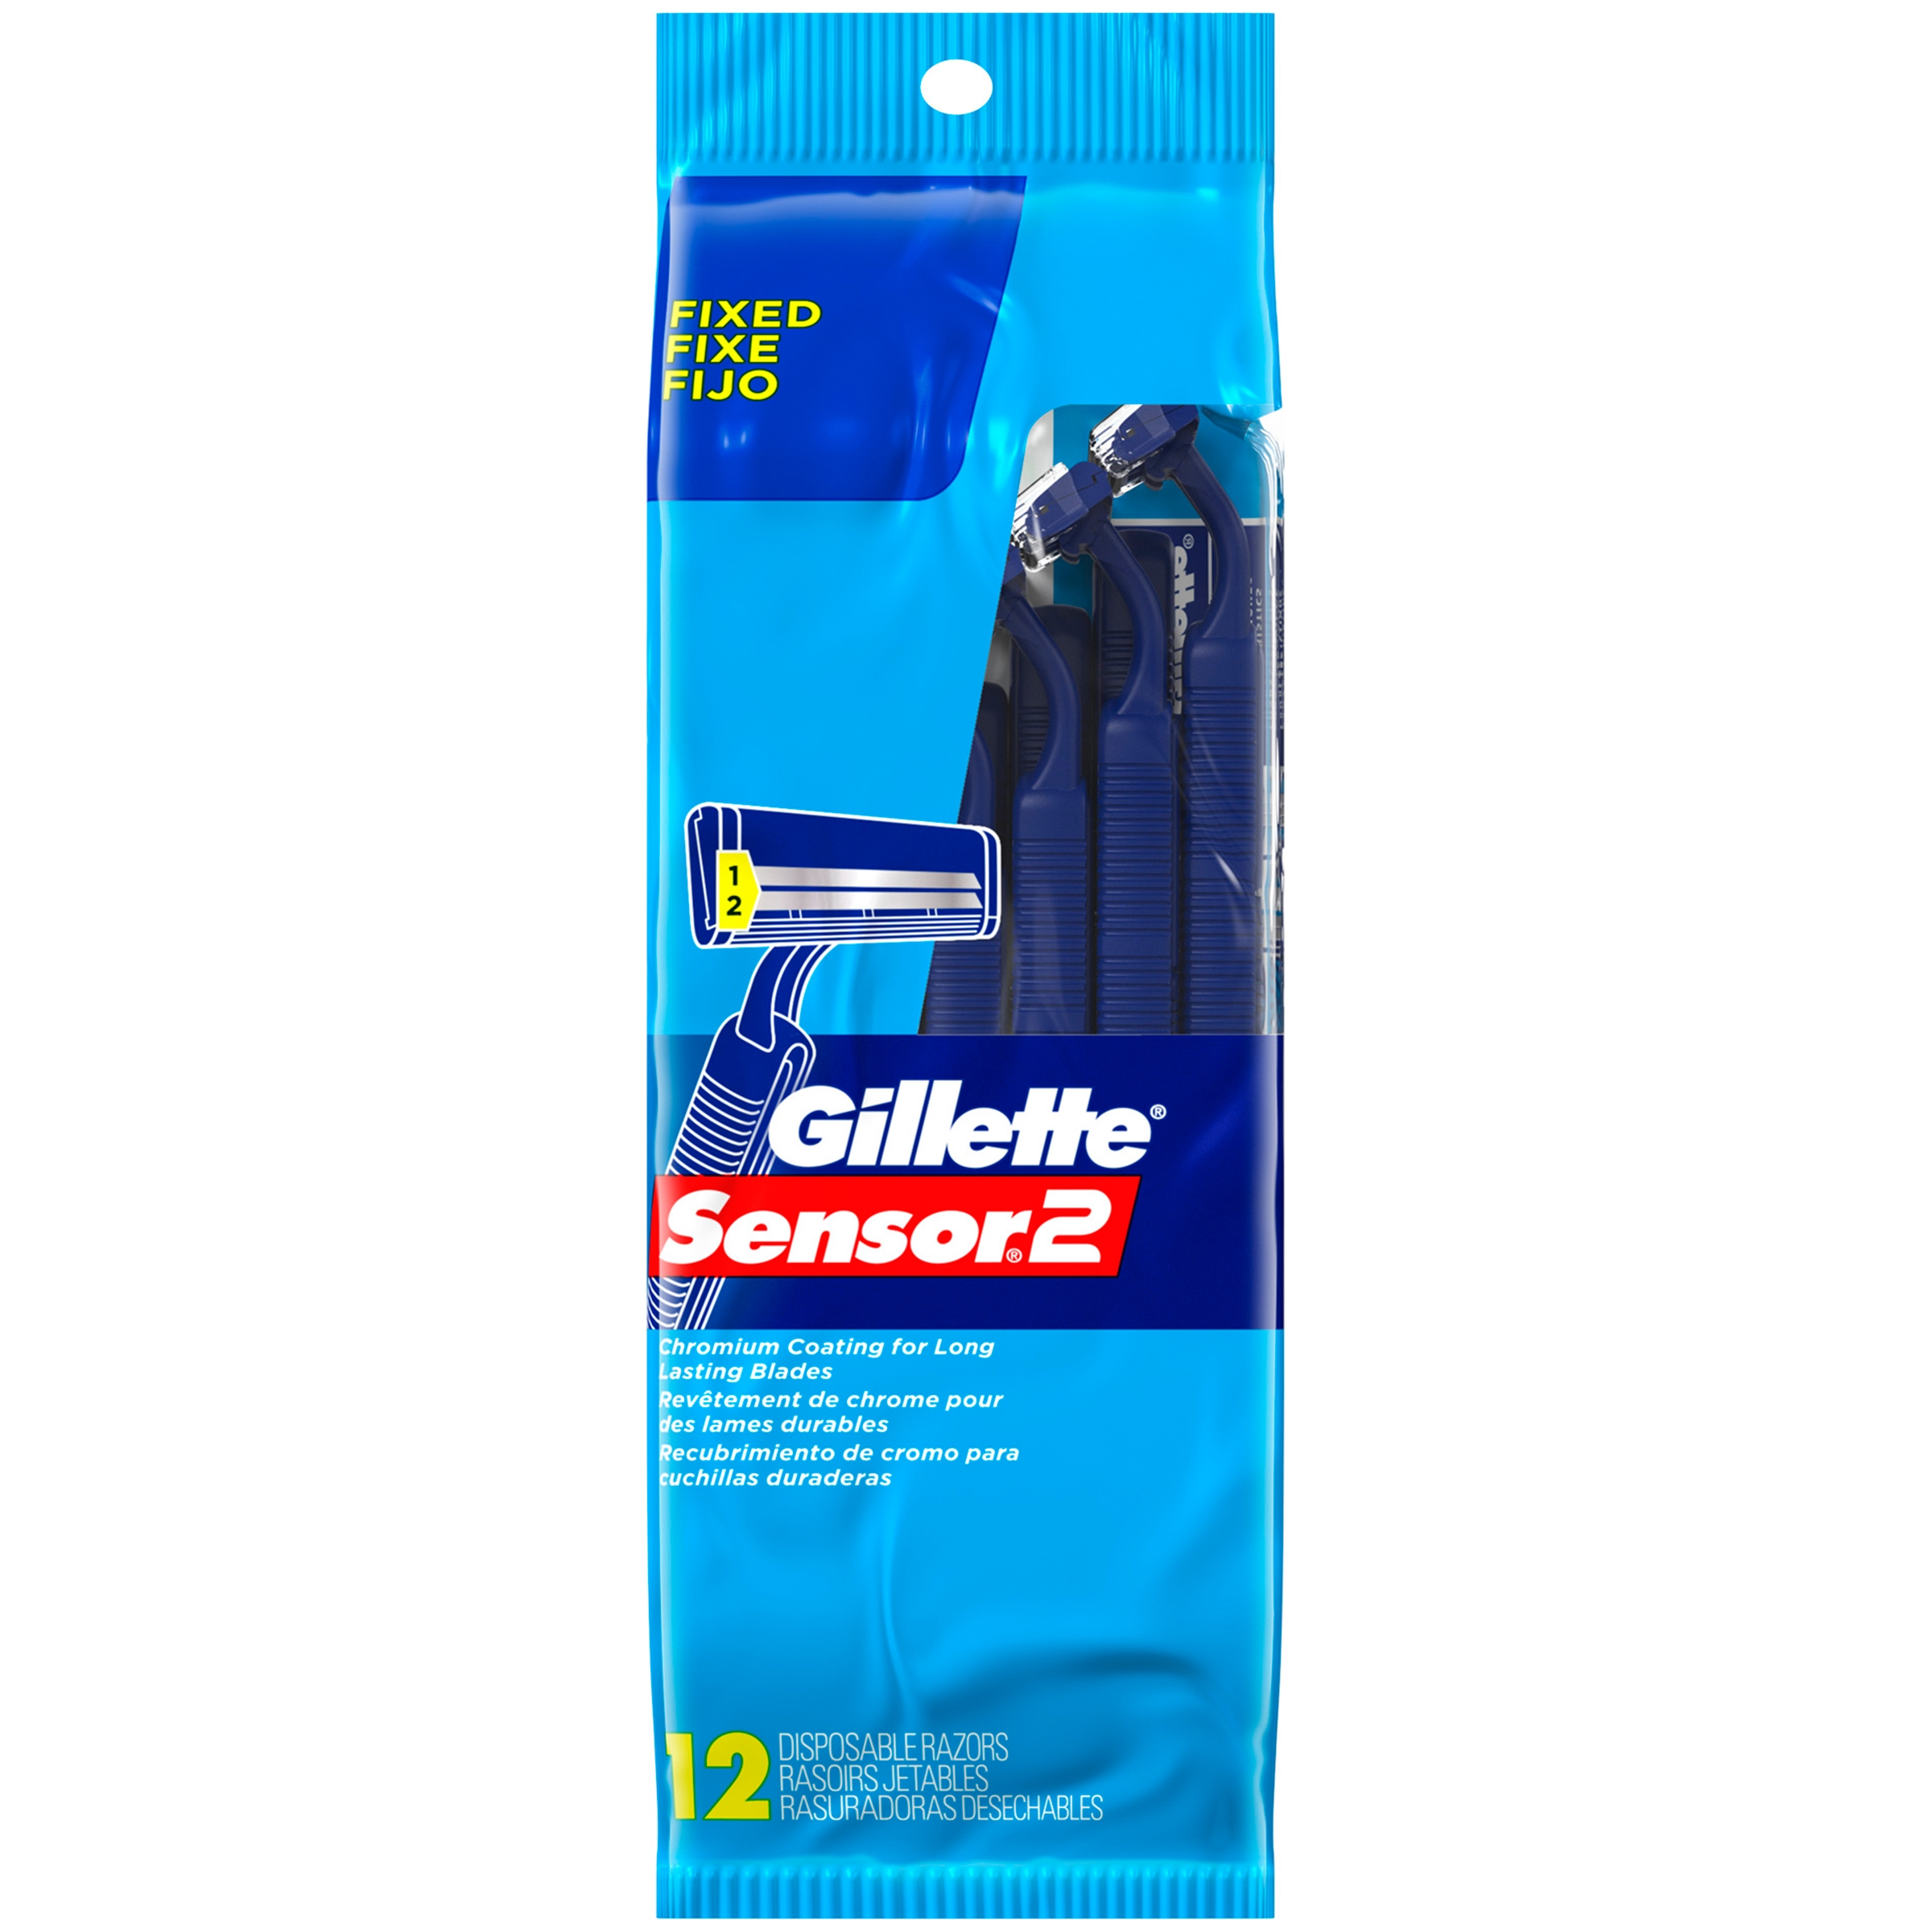 Gillette Sensor2 Men's Disposable Razors, 12 Count